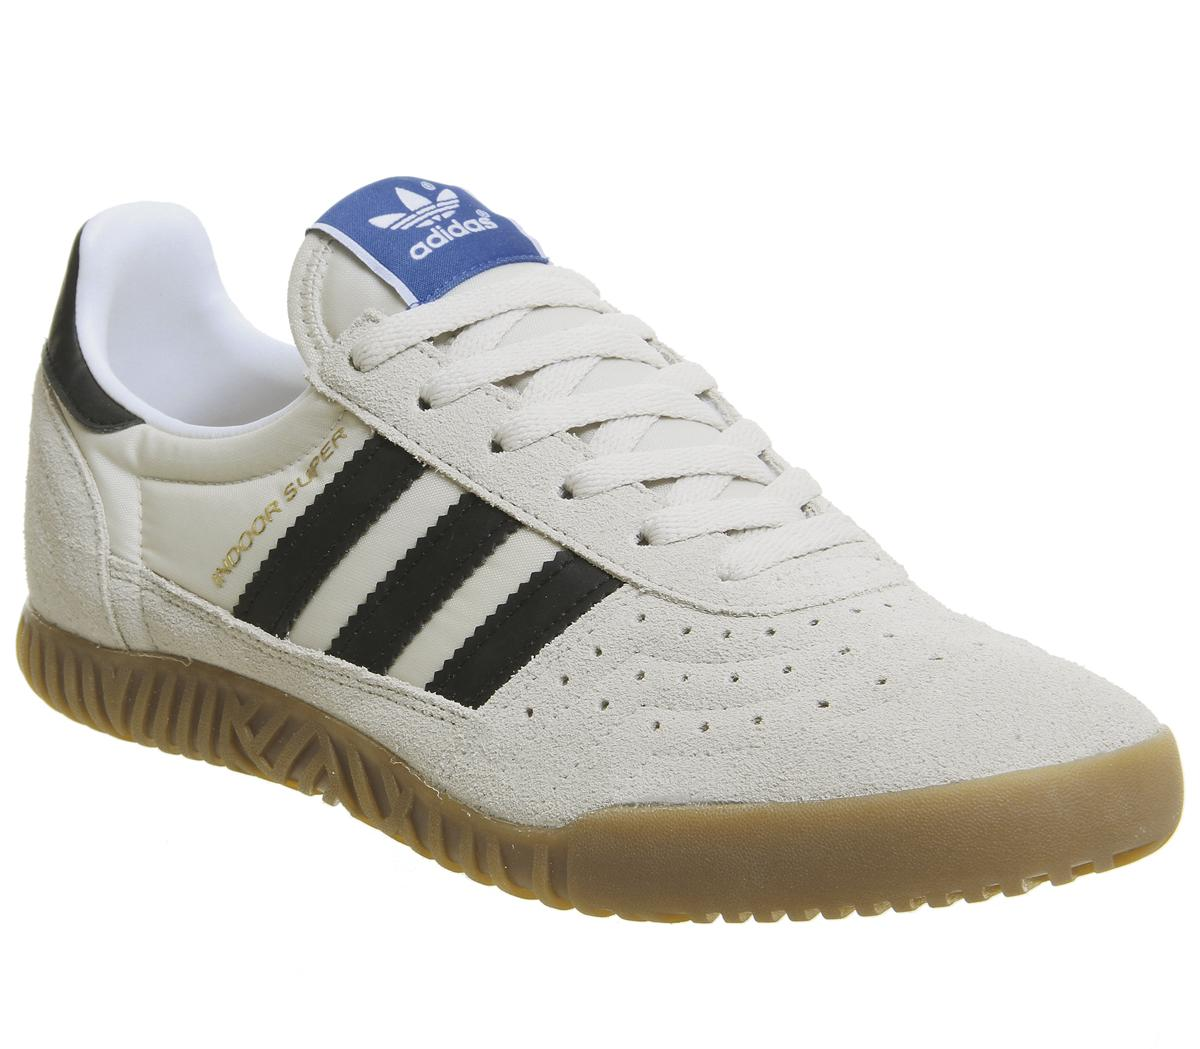 carrera Oblongo petróleo crudo  adidas Indoor Super Trainers Clear Brown Core Black Gum - His trainers